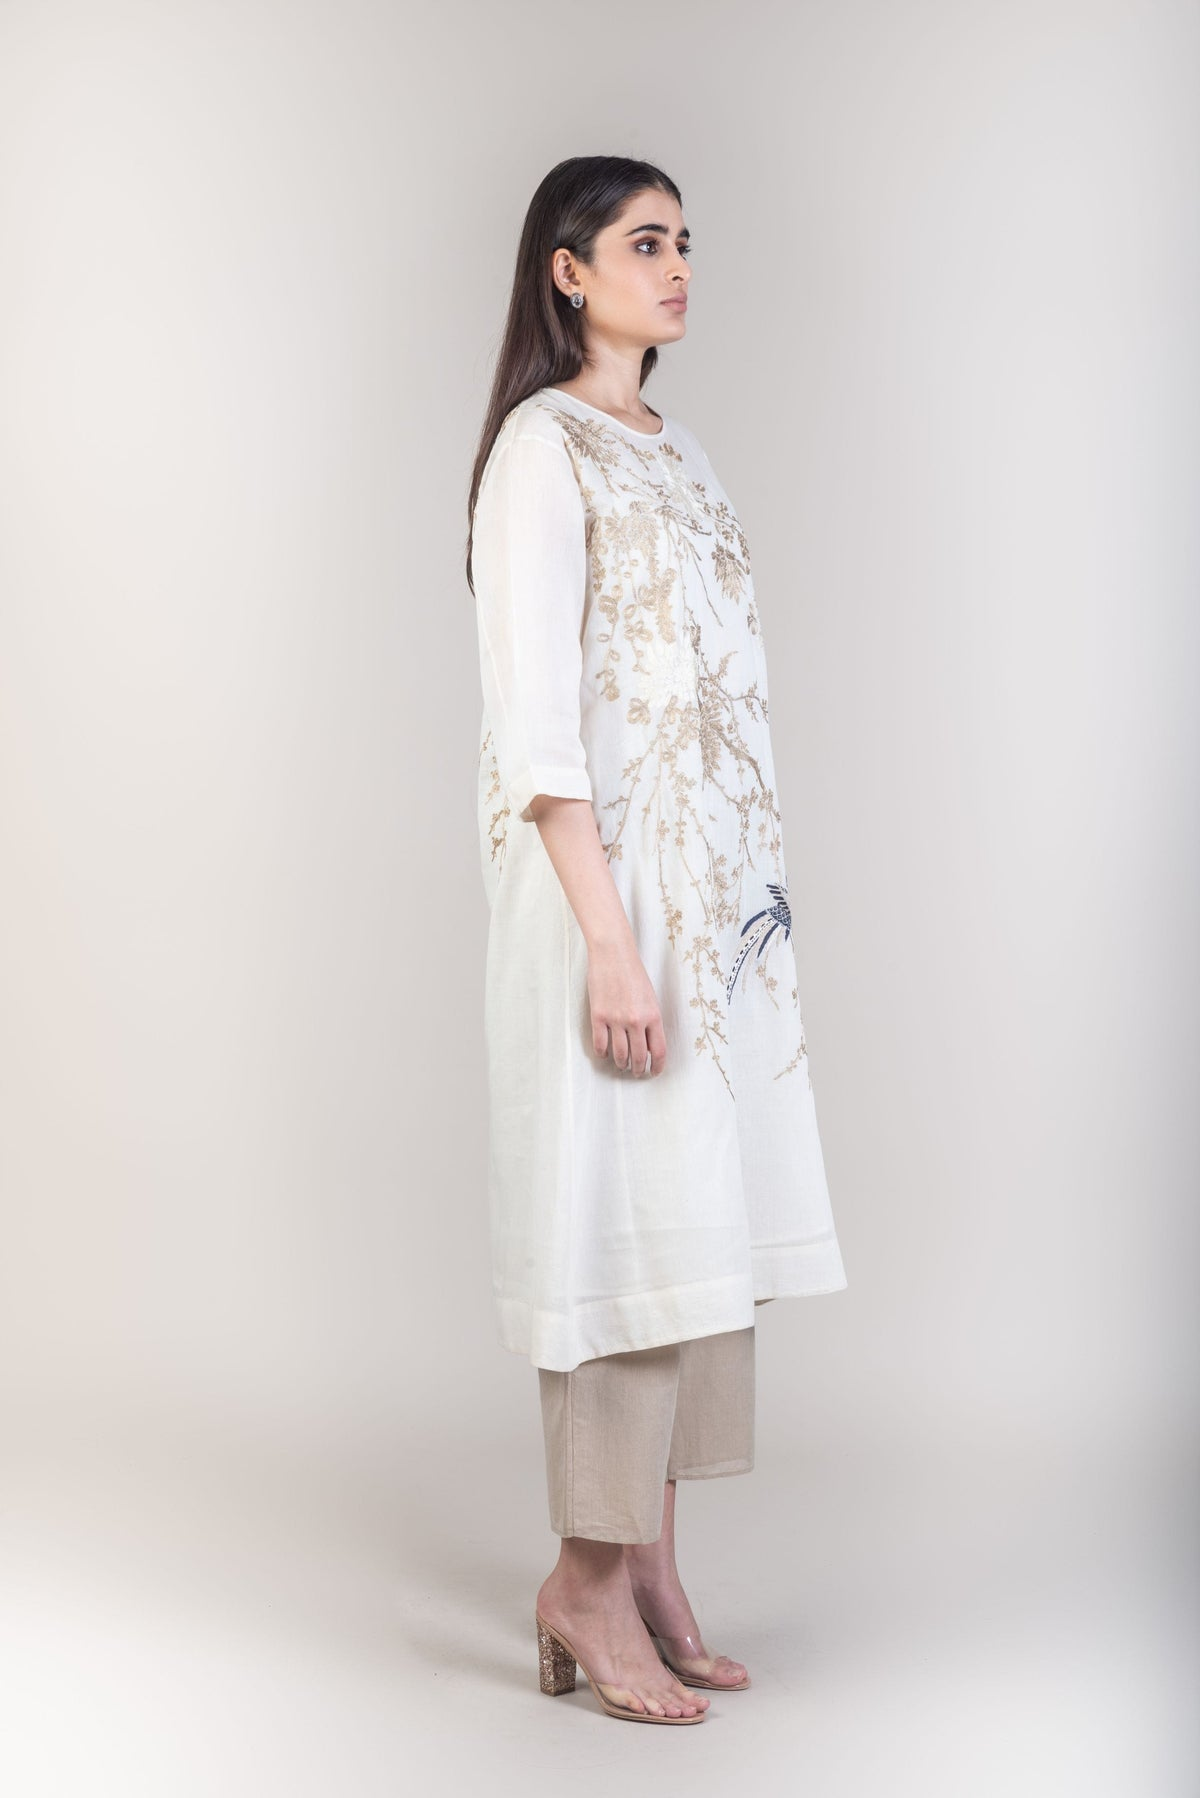 Peachoo Dresses Aari embroidered off white dress